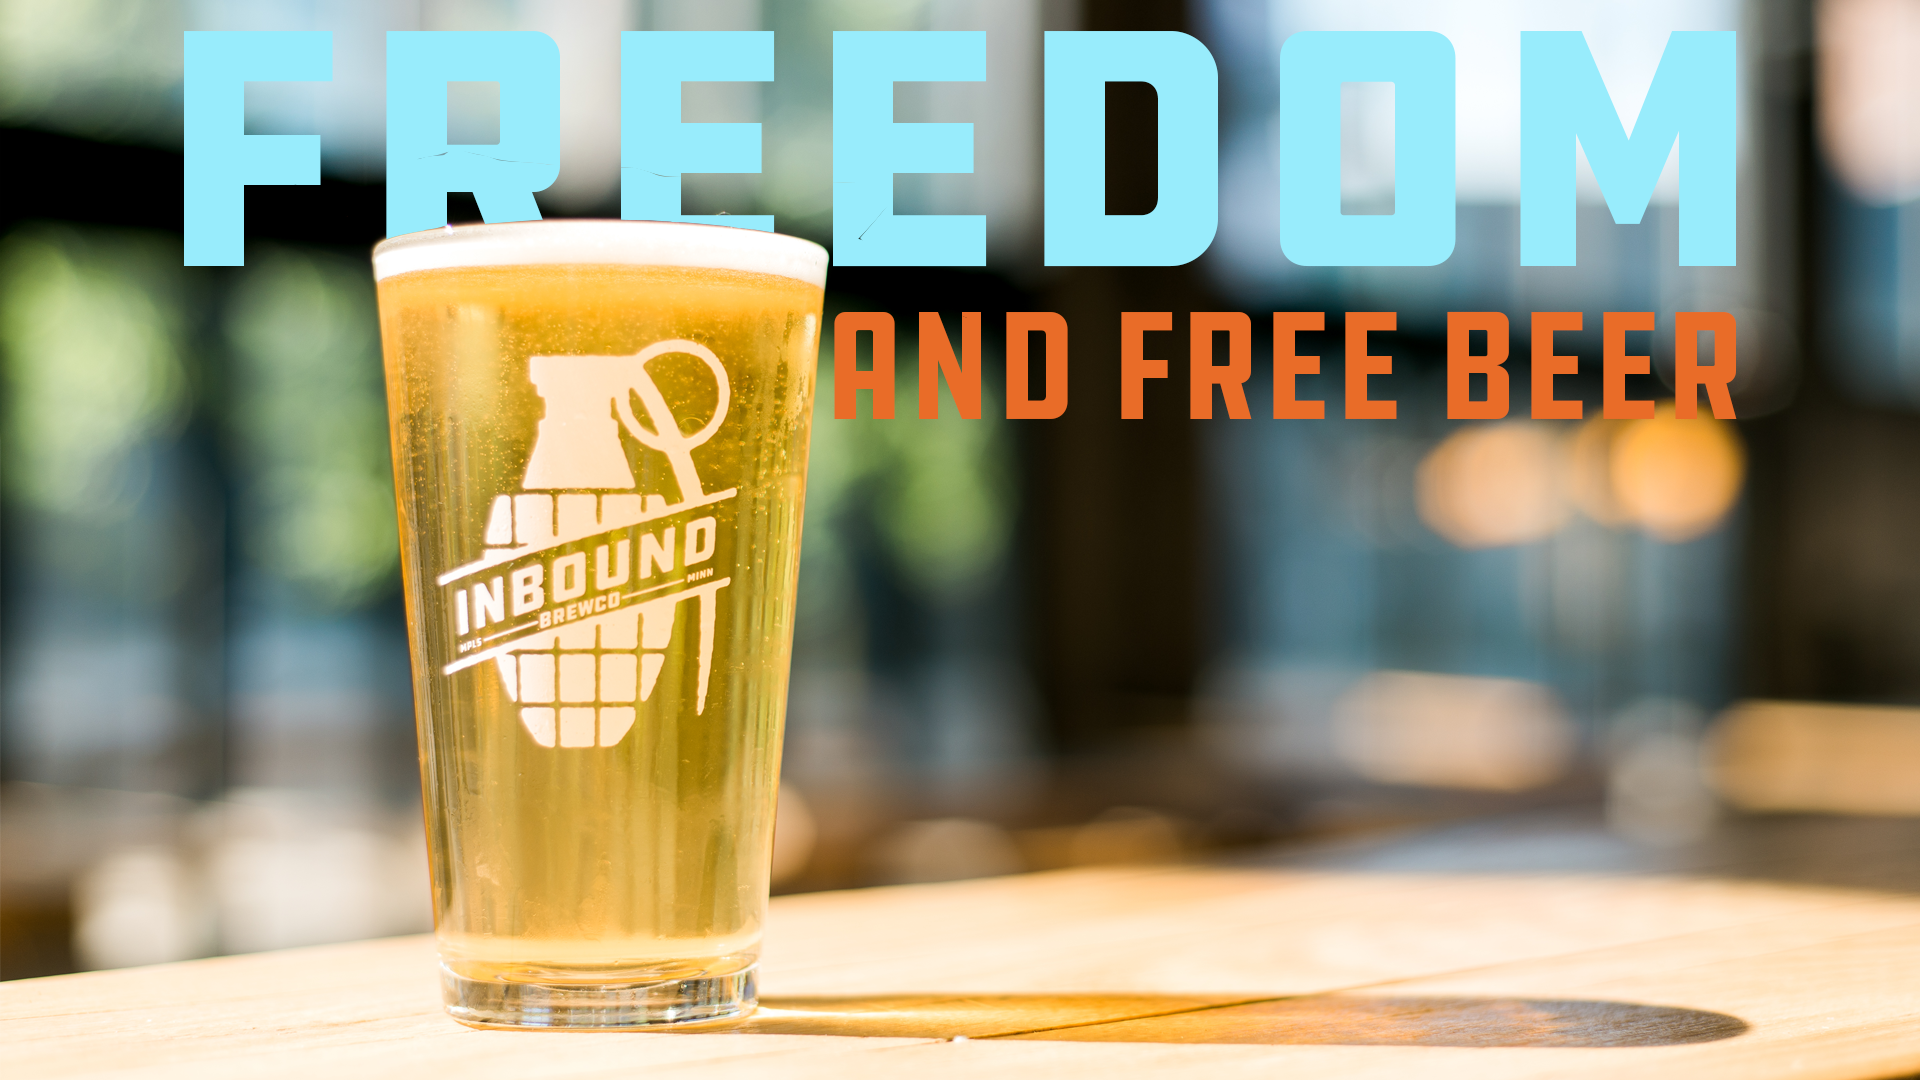 freedom free beer.png